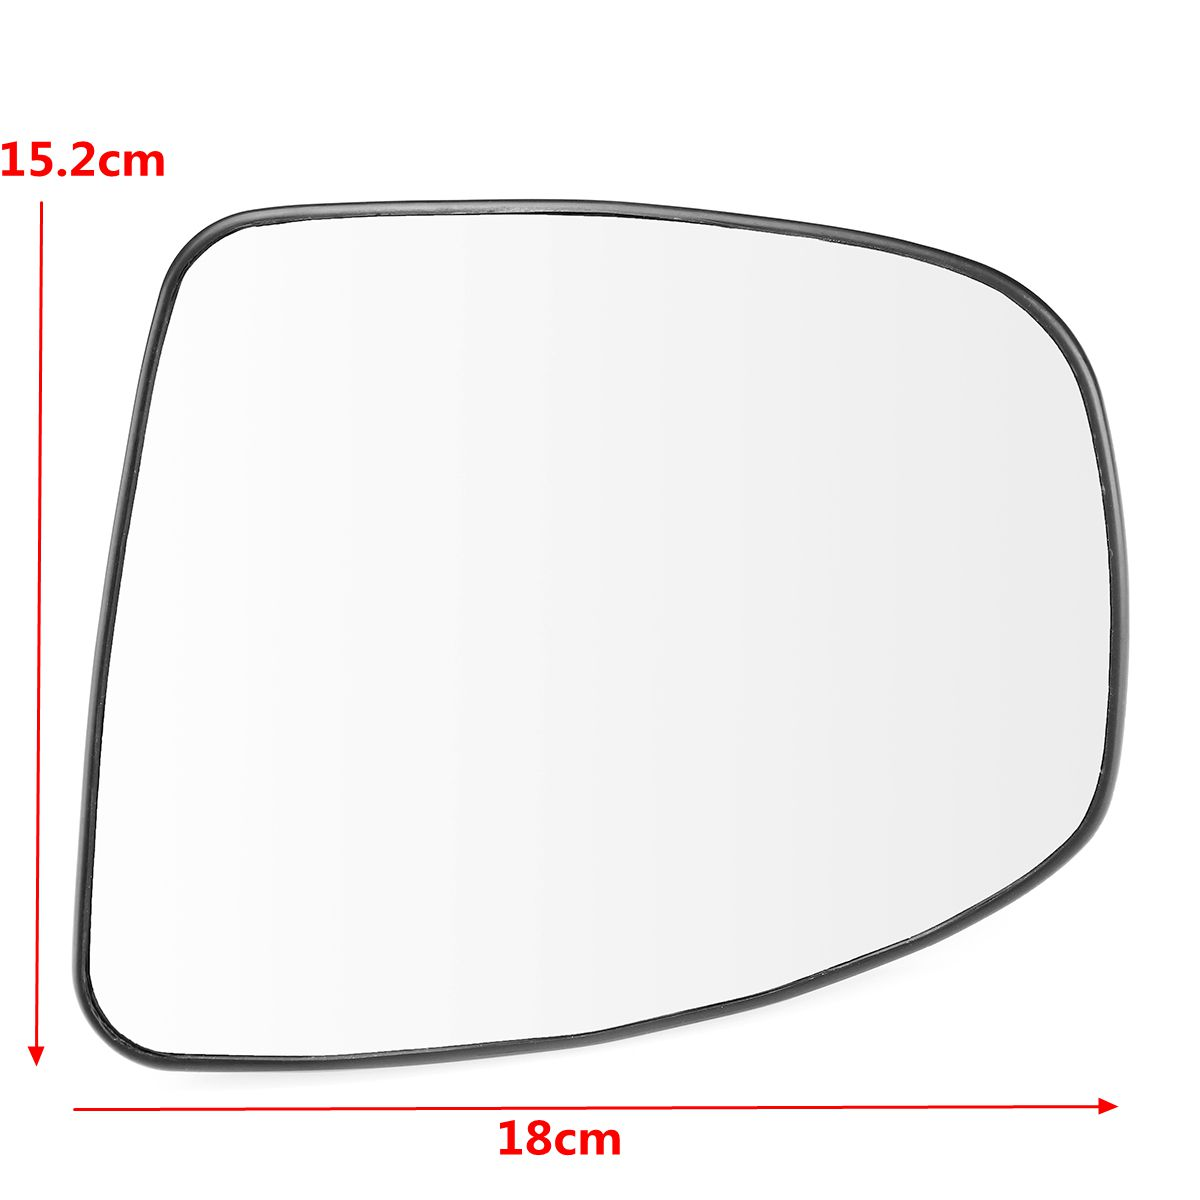 PLATE LEFT FITS NISSAN PATHFINDER R51 05-13 WING MIRROR GLASS WIDE ANGLE HEATED